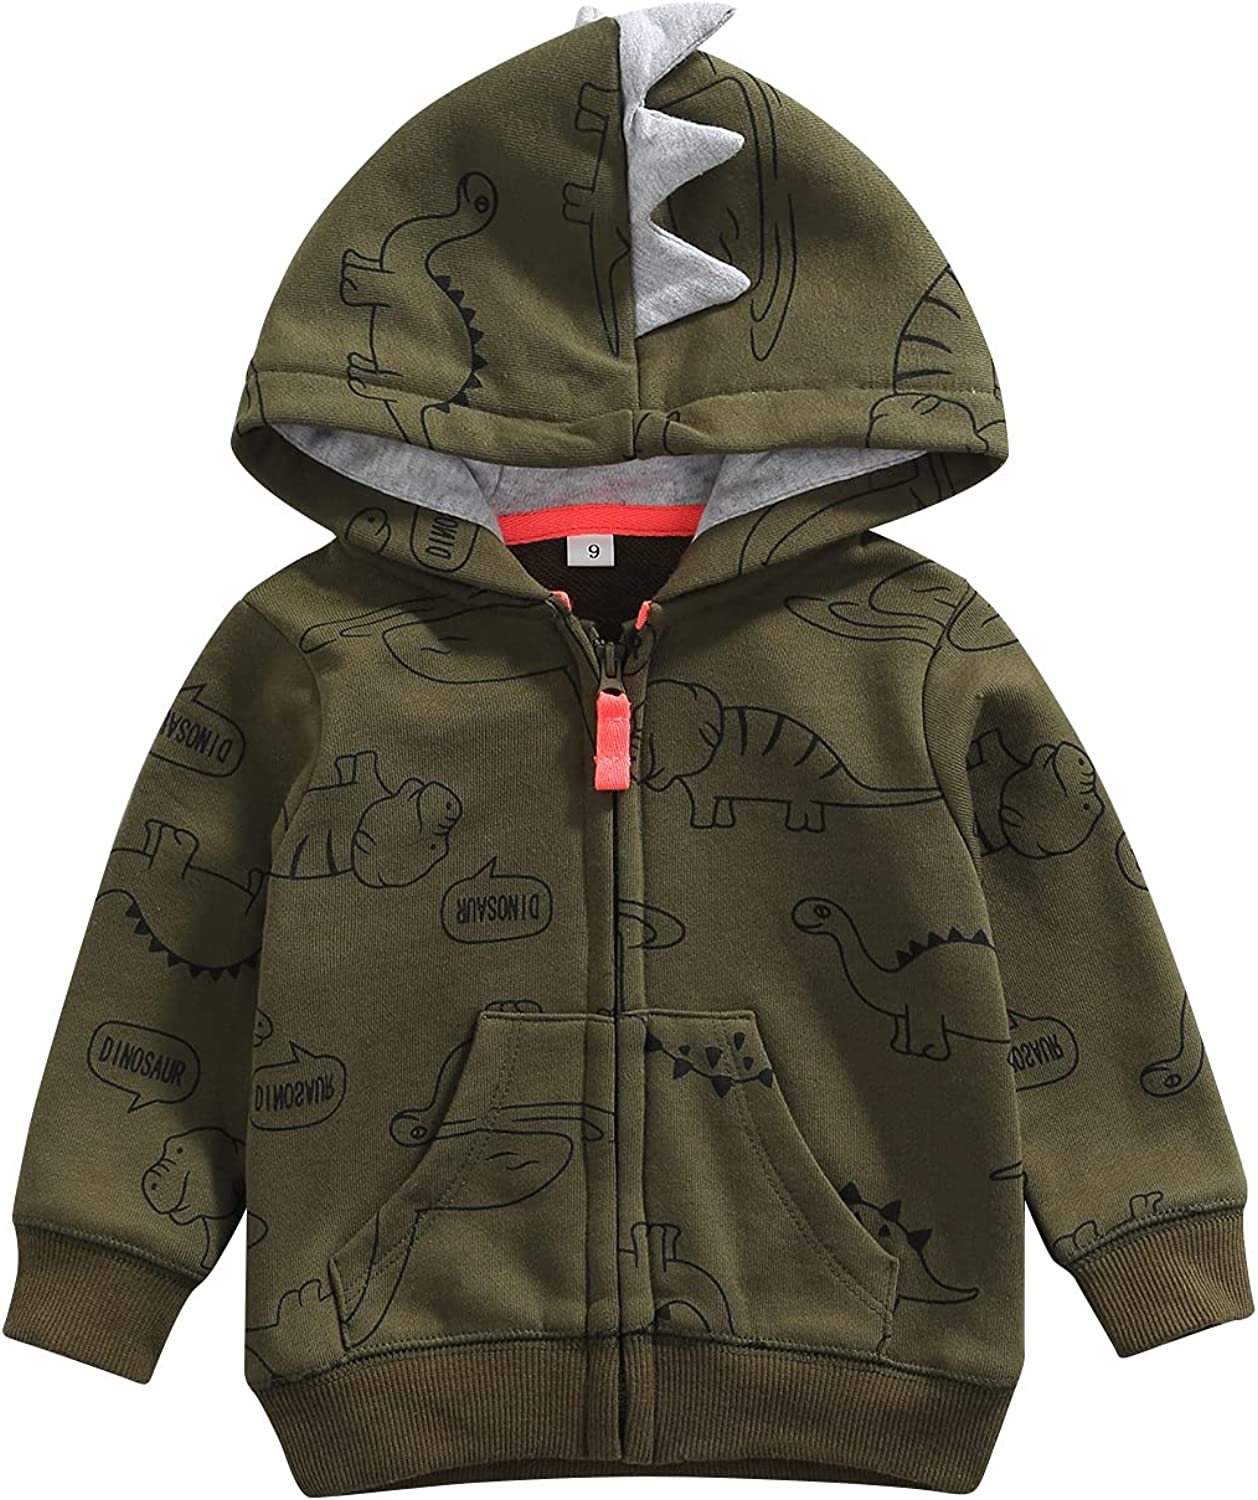 Baby Boy Hooded Jacket Fall Clothes Coat Ranking TOP3 Dinosaur Hoodie Winter Today's only